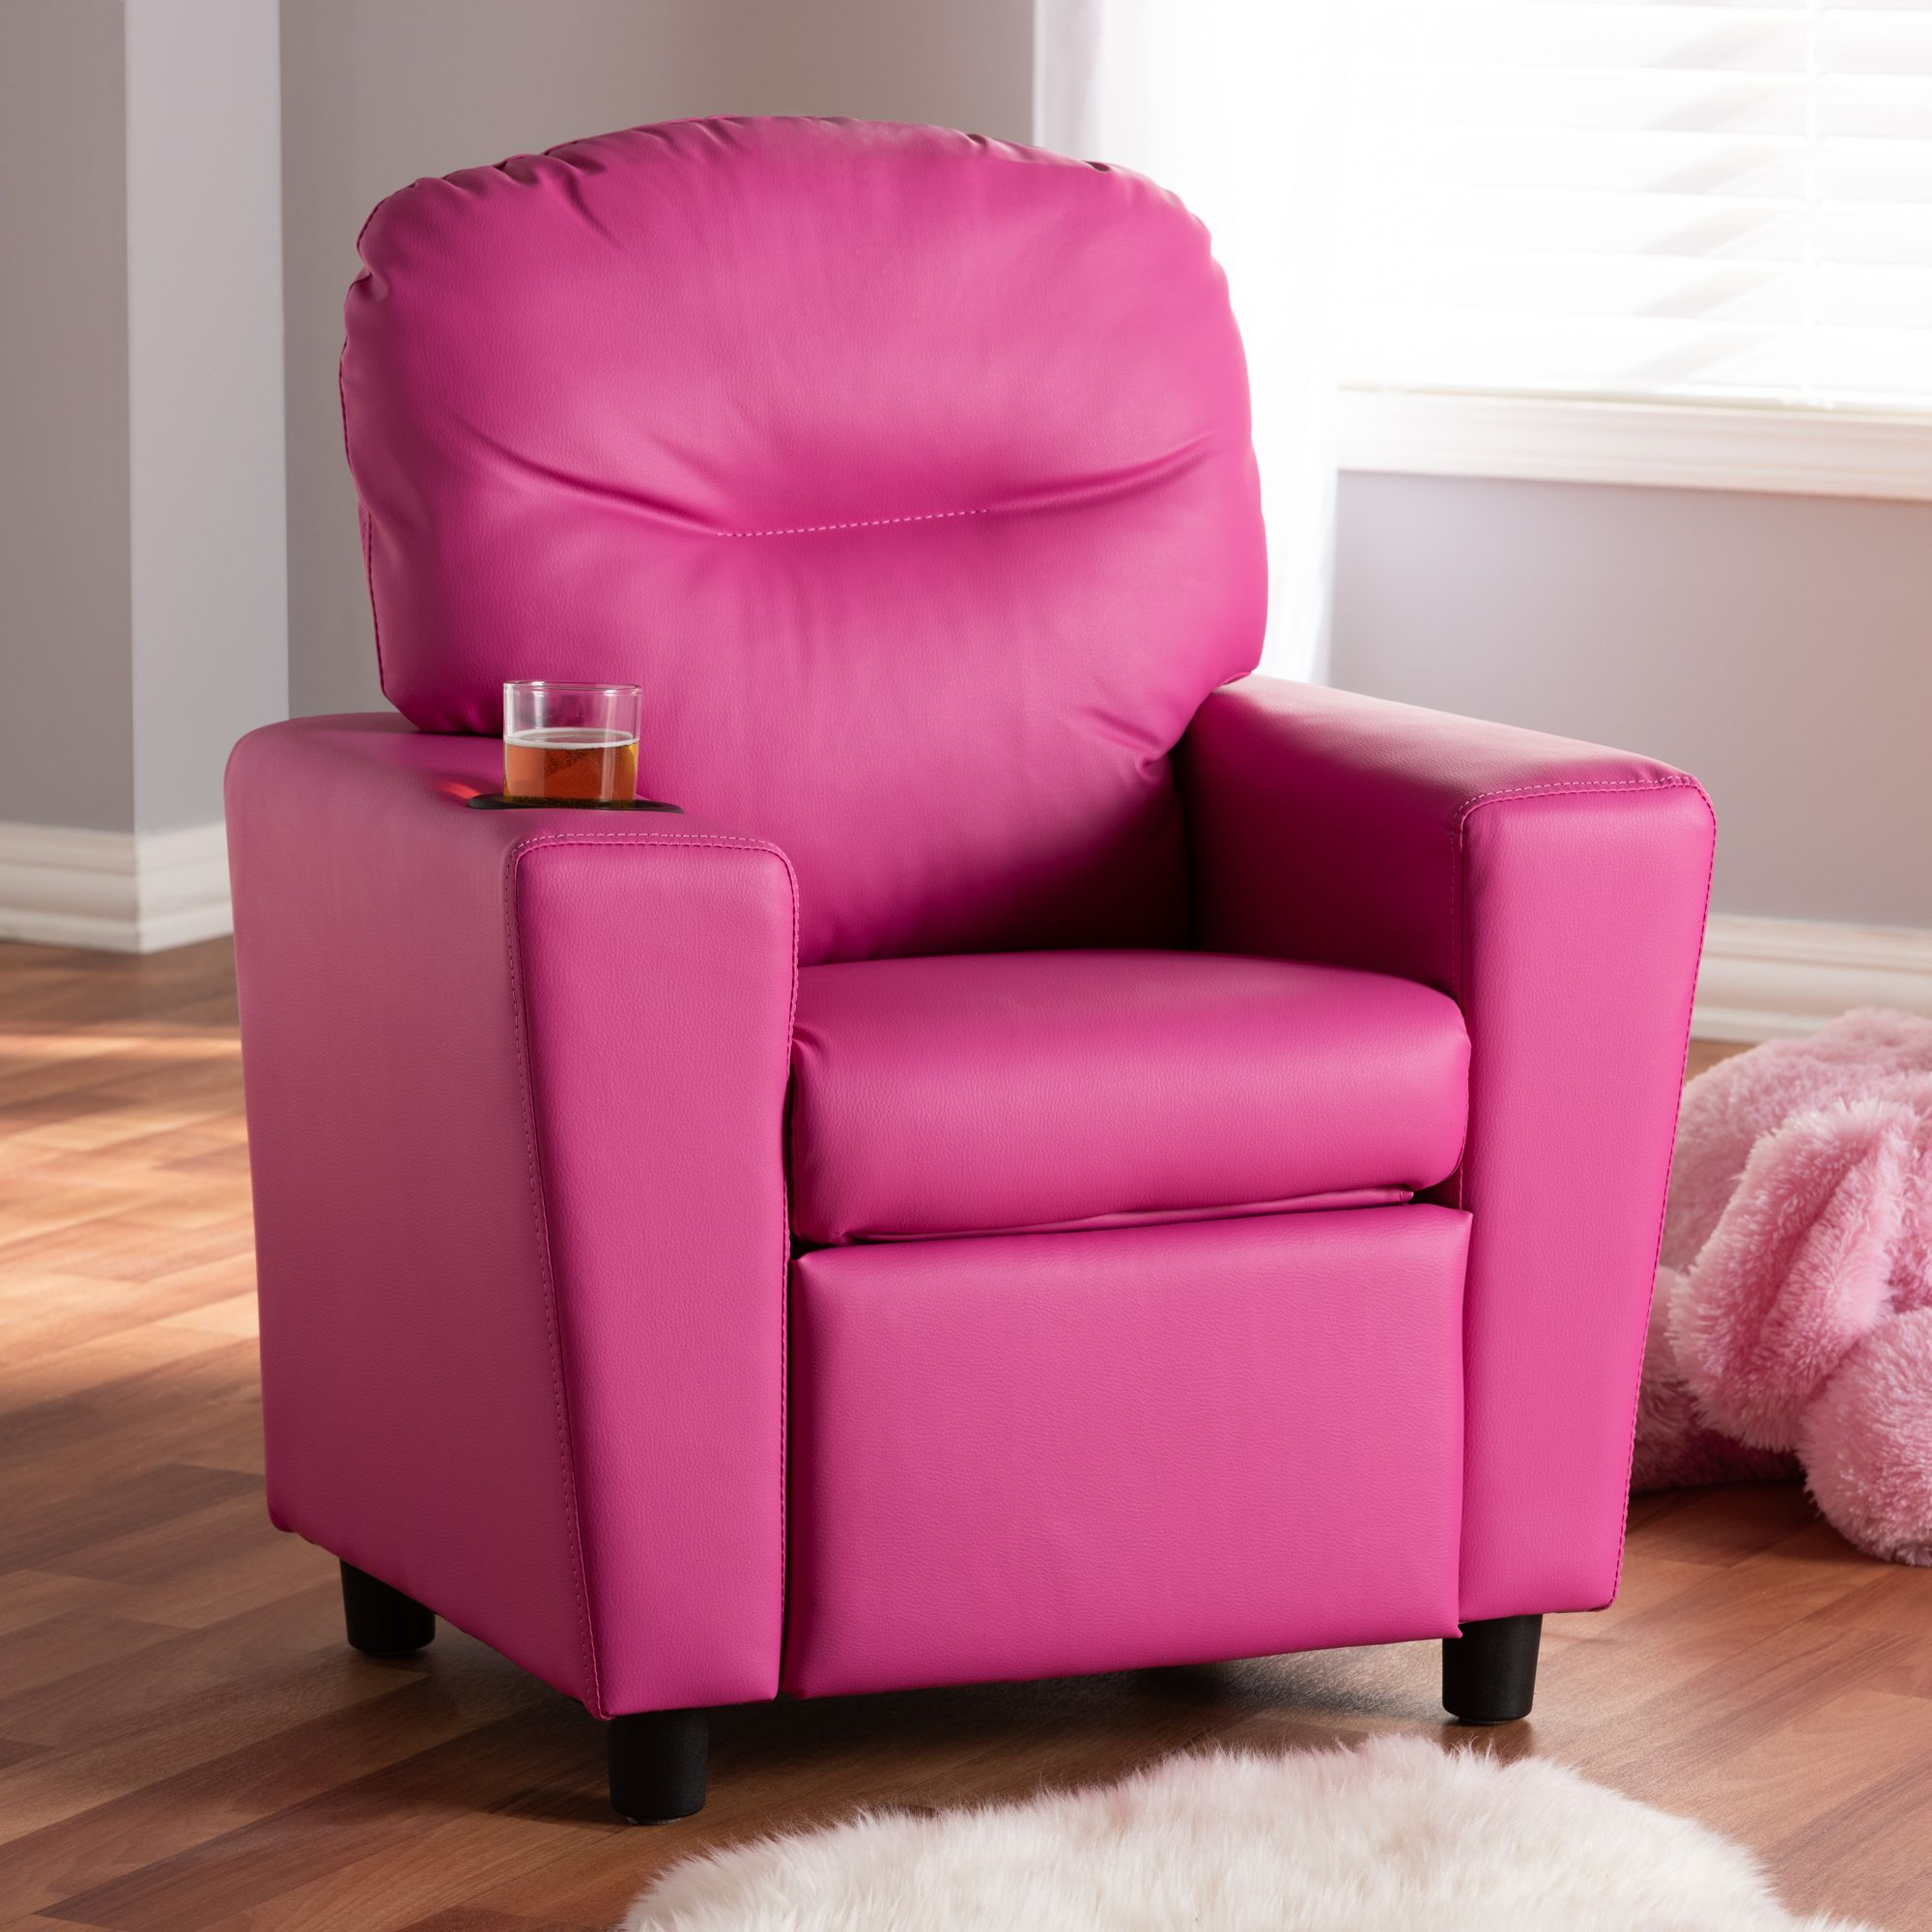 Brilliant Baxton Studio Evonka Modern And Contemporary Magenta Pink Andrewgaddart Wooden Chair Designs For Living Room Andrewgaddartcom